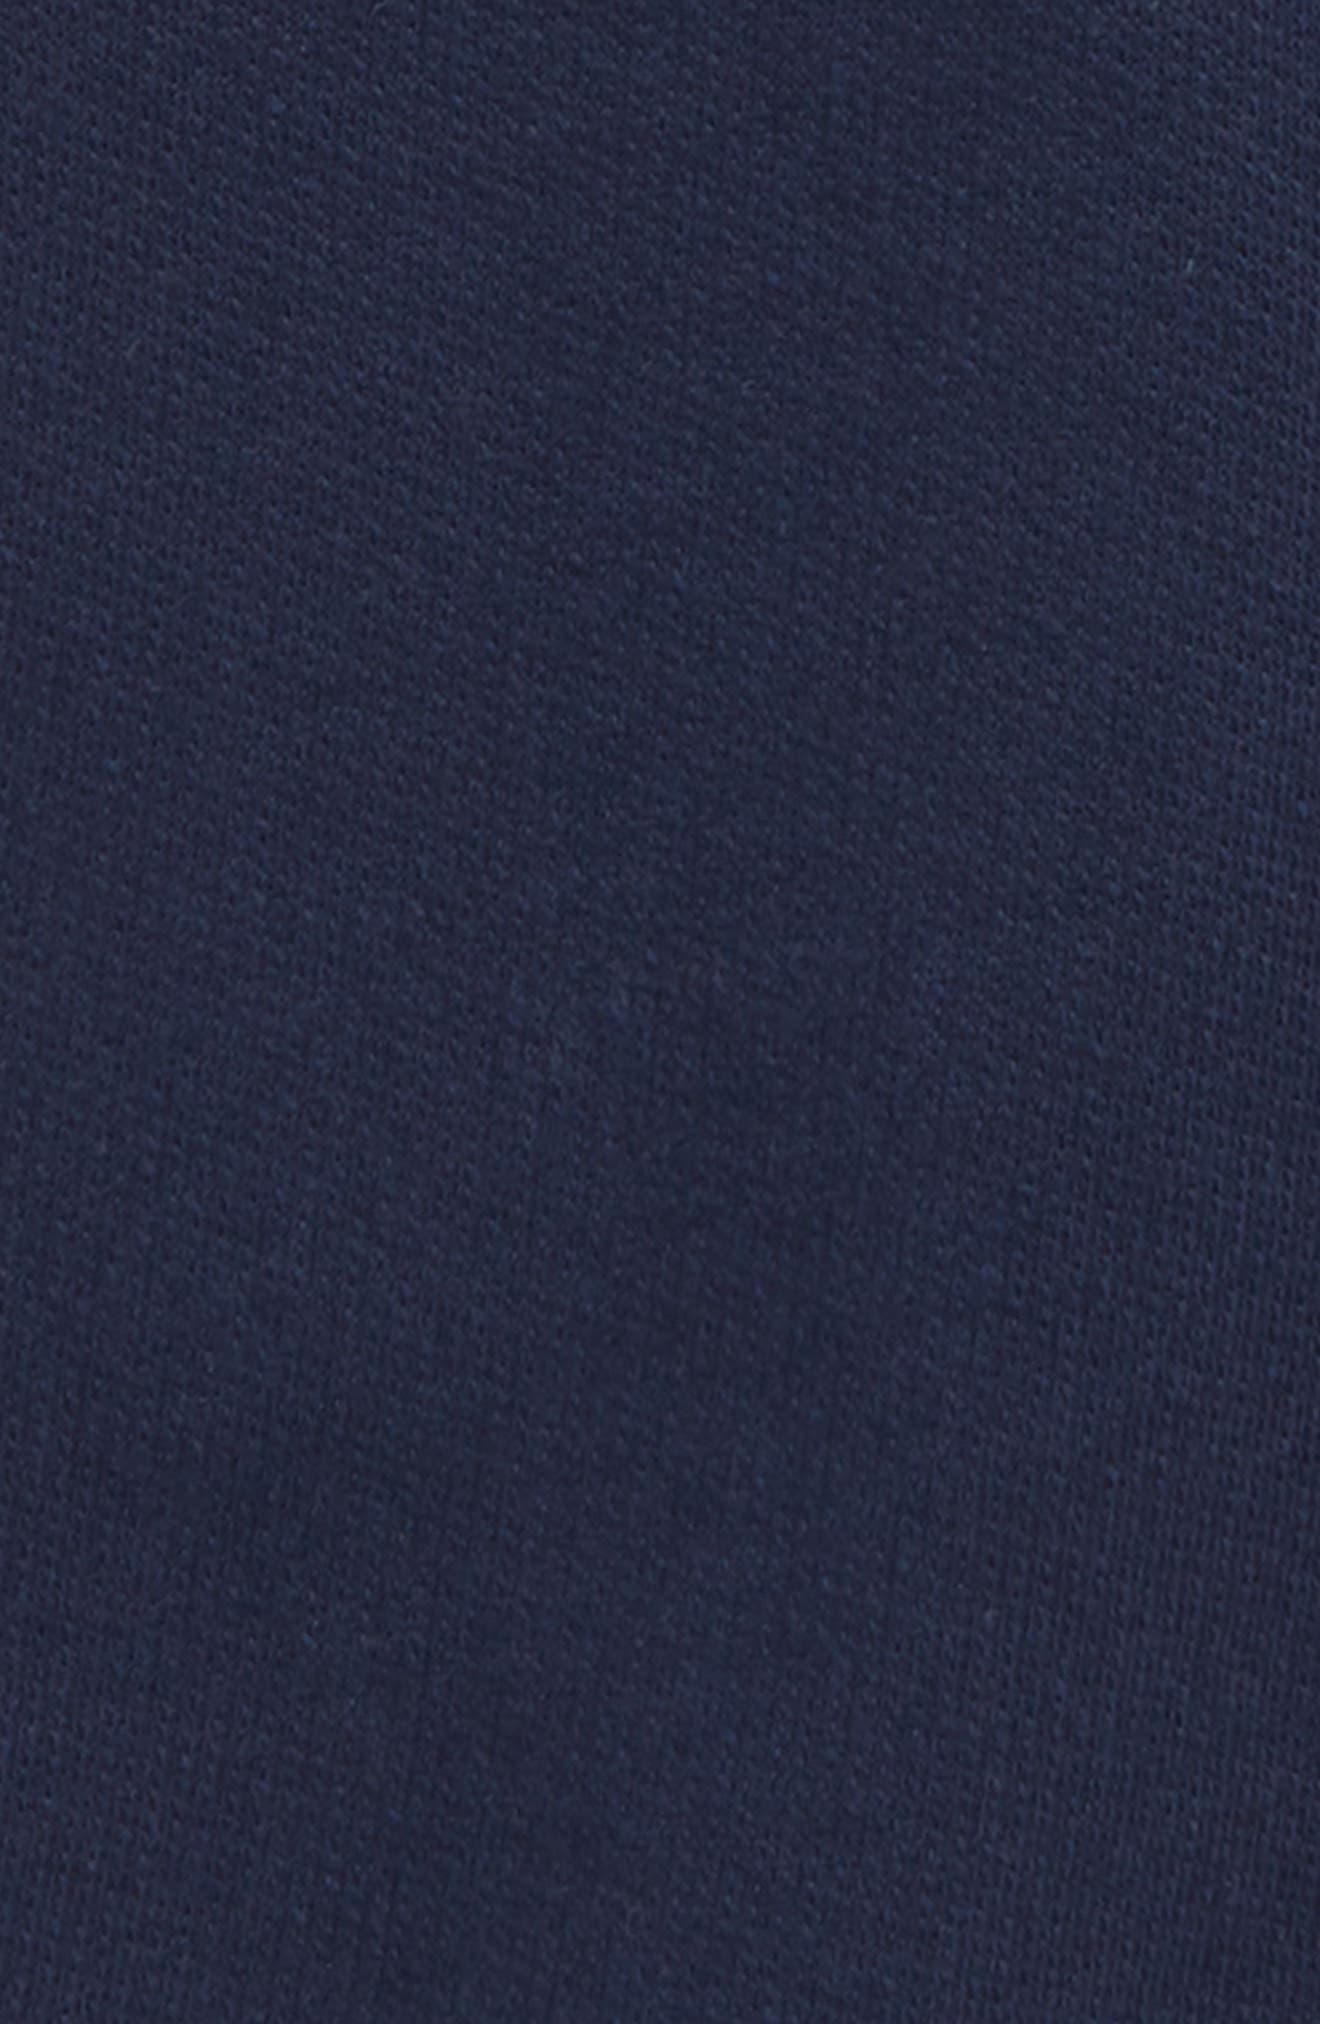 Organic Cotton Shorts,                             Alternate thumbnail 2, color,                             NAVY